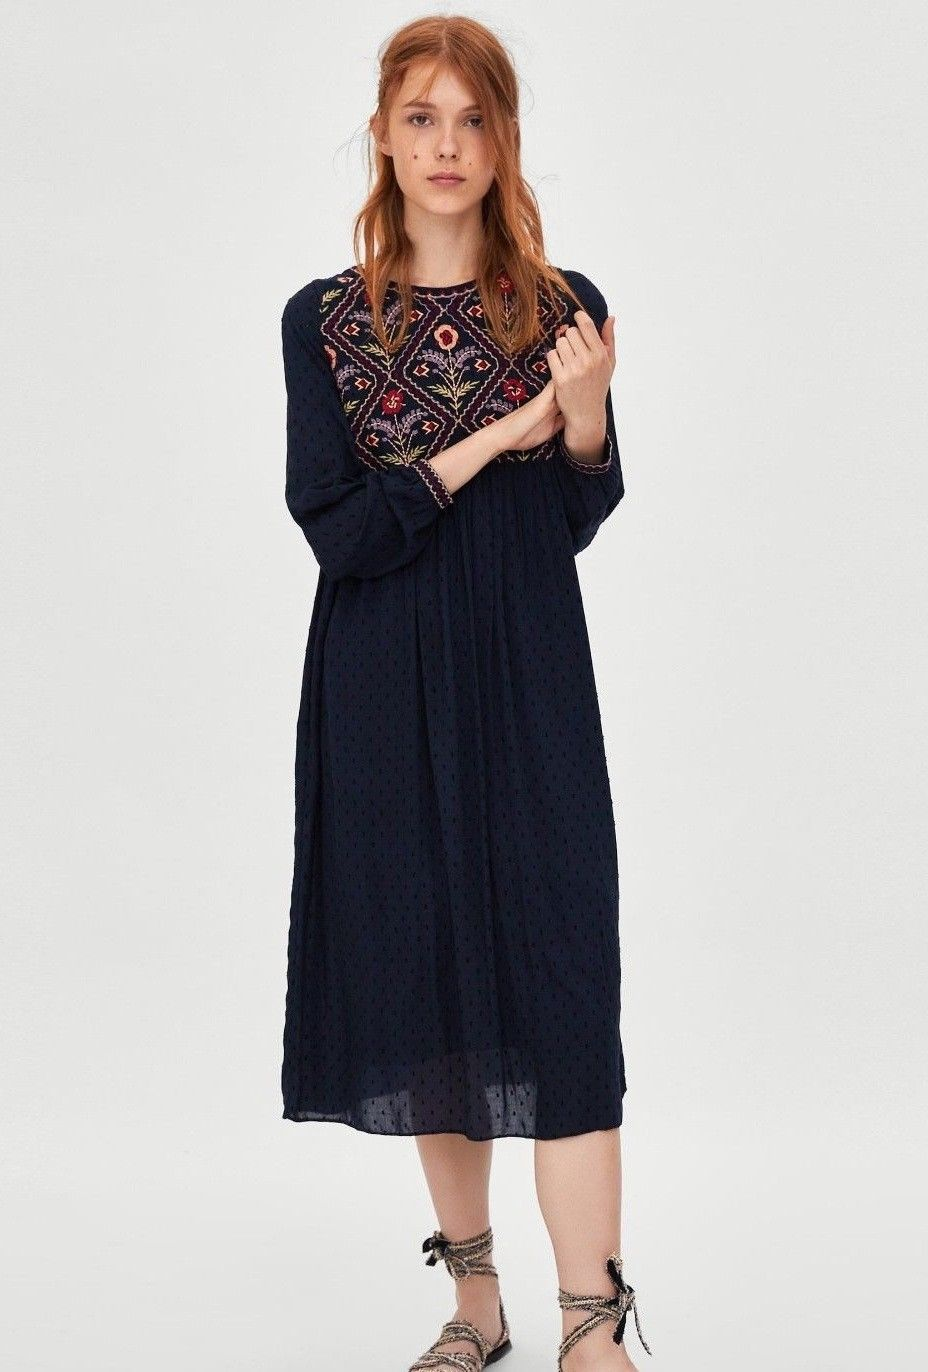 0d355dde4ef Zara Navy Blue Embroidered Dotted Mesh Plumetis Midi Dress Size M UK ...